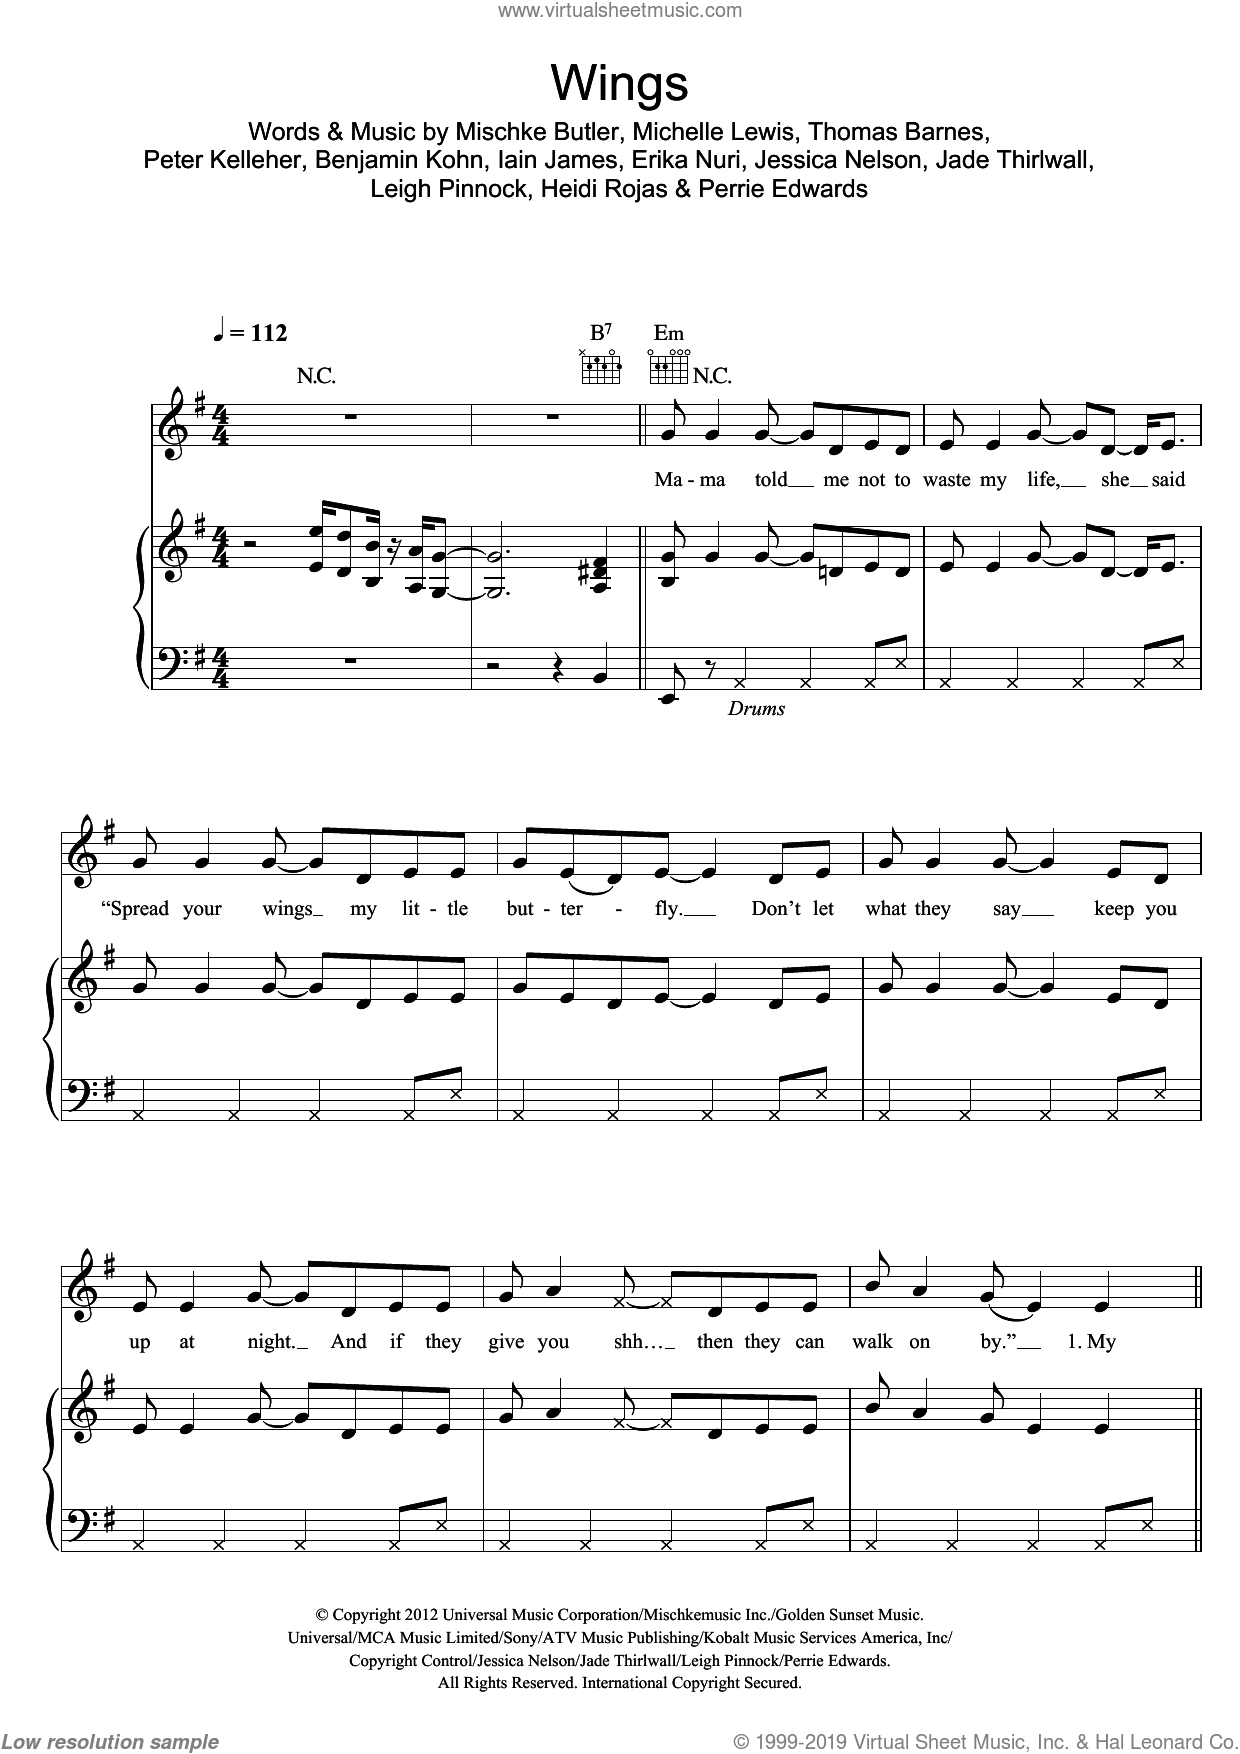 Wings sheet music for voice, piano or guitar by Thomas Barnes, Little Mix, Benjamin Kohn, Iain James, Jade Thirlwall, Michelle Lewis, Perrie Edwards and Peter Kelleher. Score Image Preview.